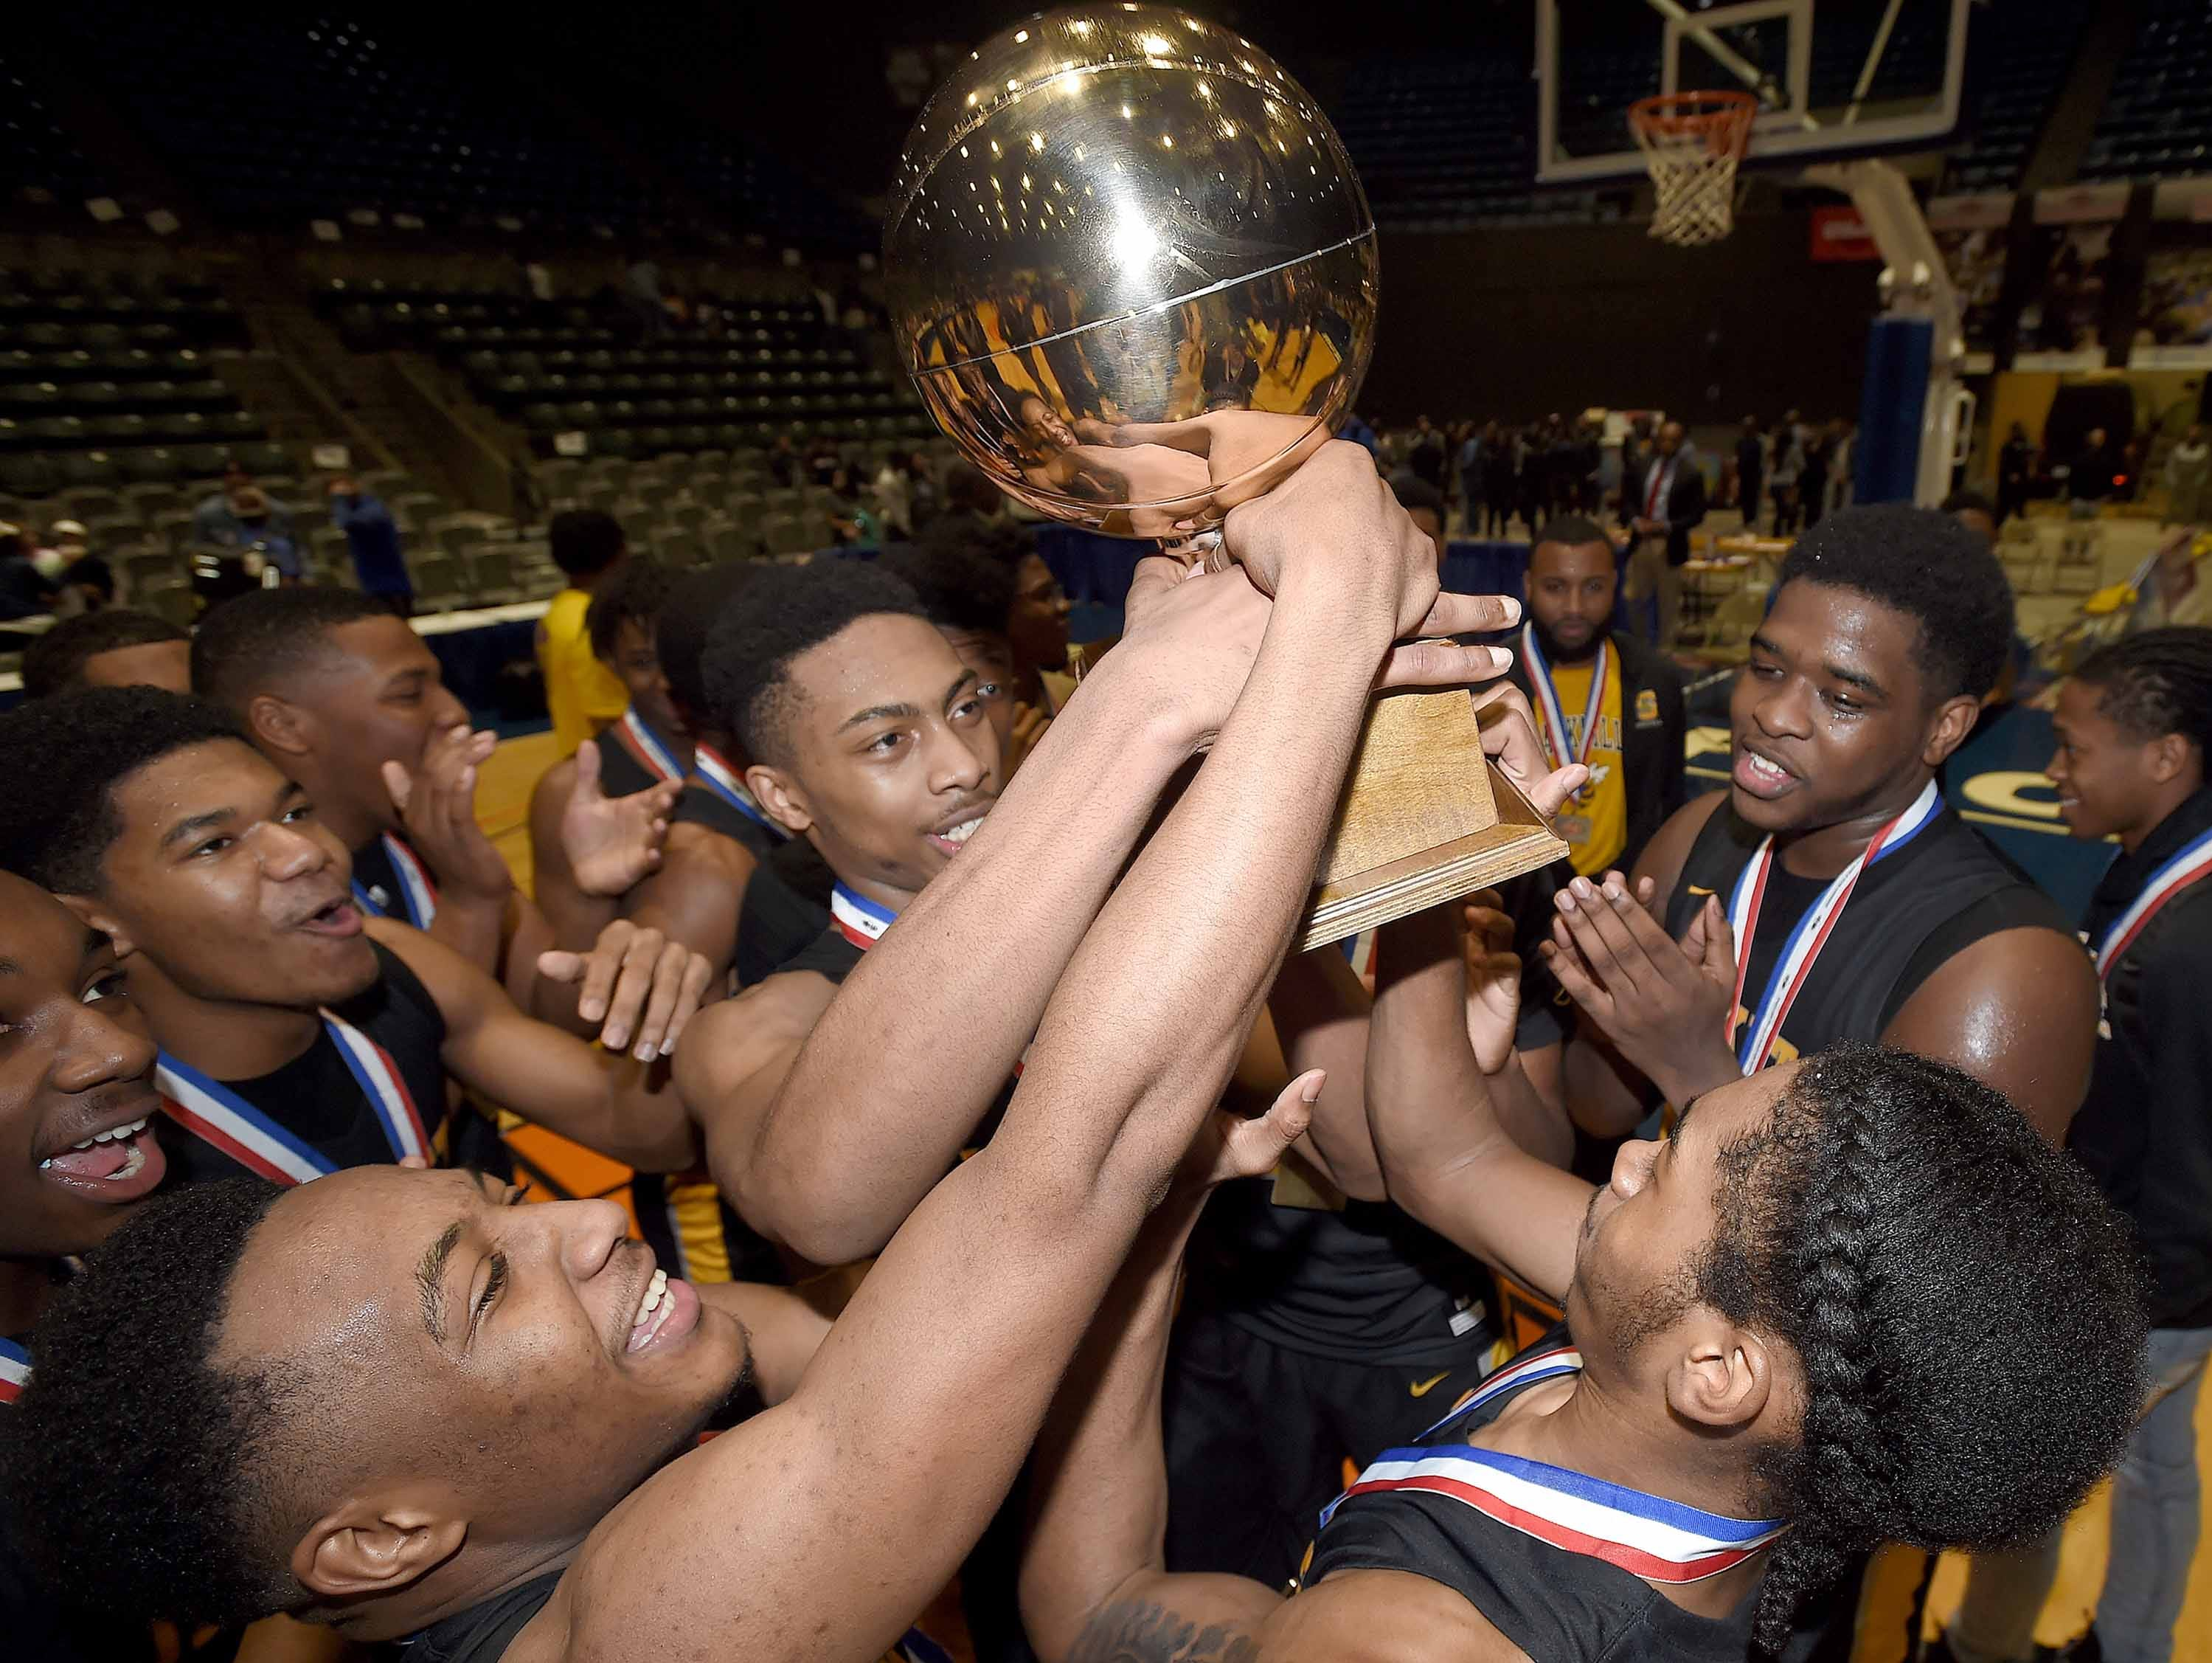 The Starkville Yellow Jackets celebrate with the Class 6A trophy after beating Meridian in the Class 6A finals of the MHSAA C Spire State Basketball Championships at the Mississippi Coliseum in Jackson, Miss., on Saturday, March 9, 2019.